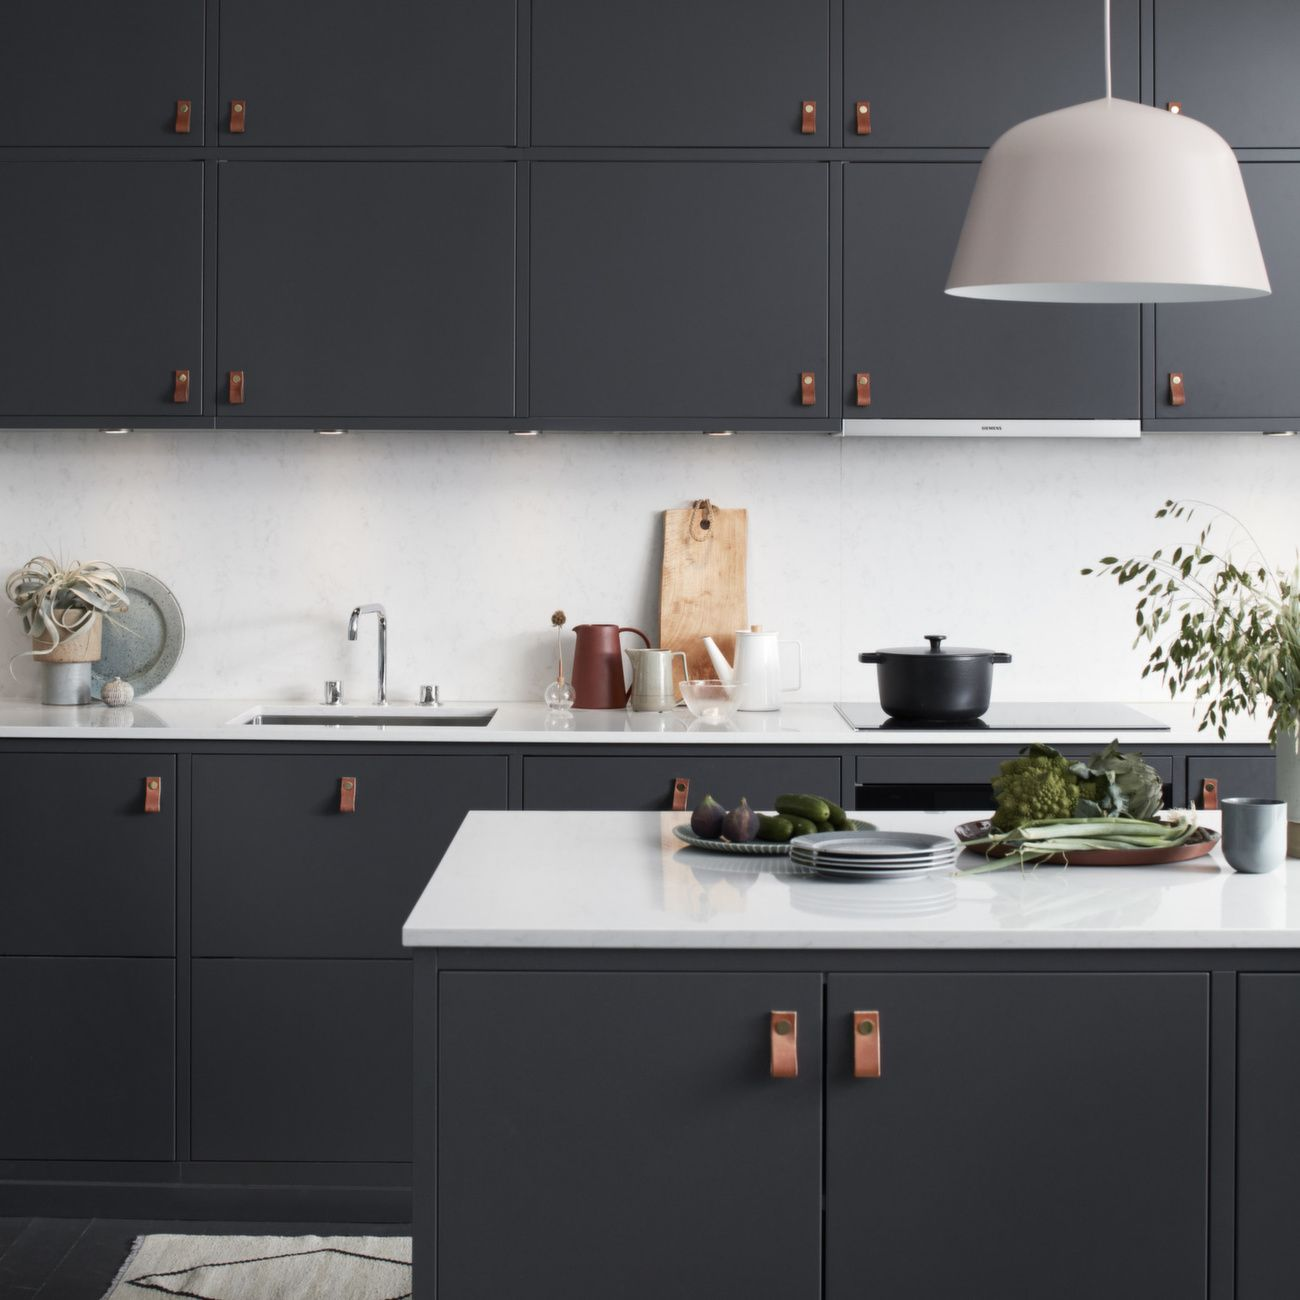 Ikea Küche Kungsbacka Image Result For Kungsbacka Ikea Home Ideas In 2019